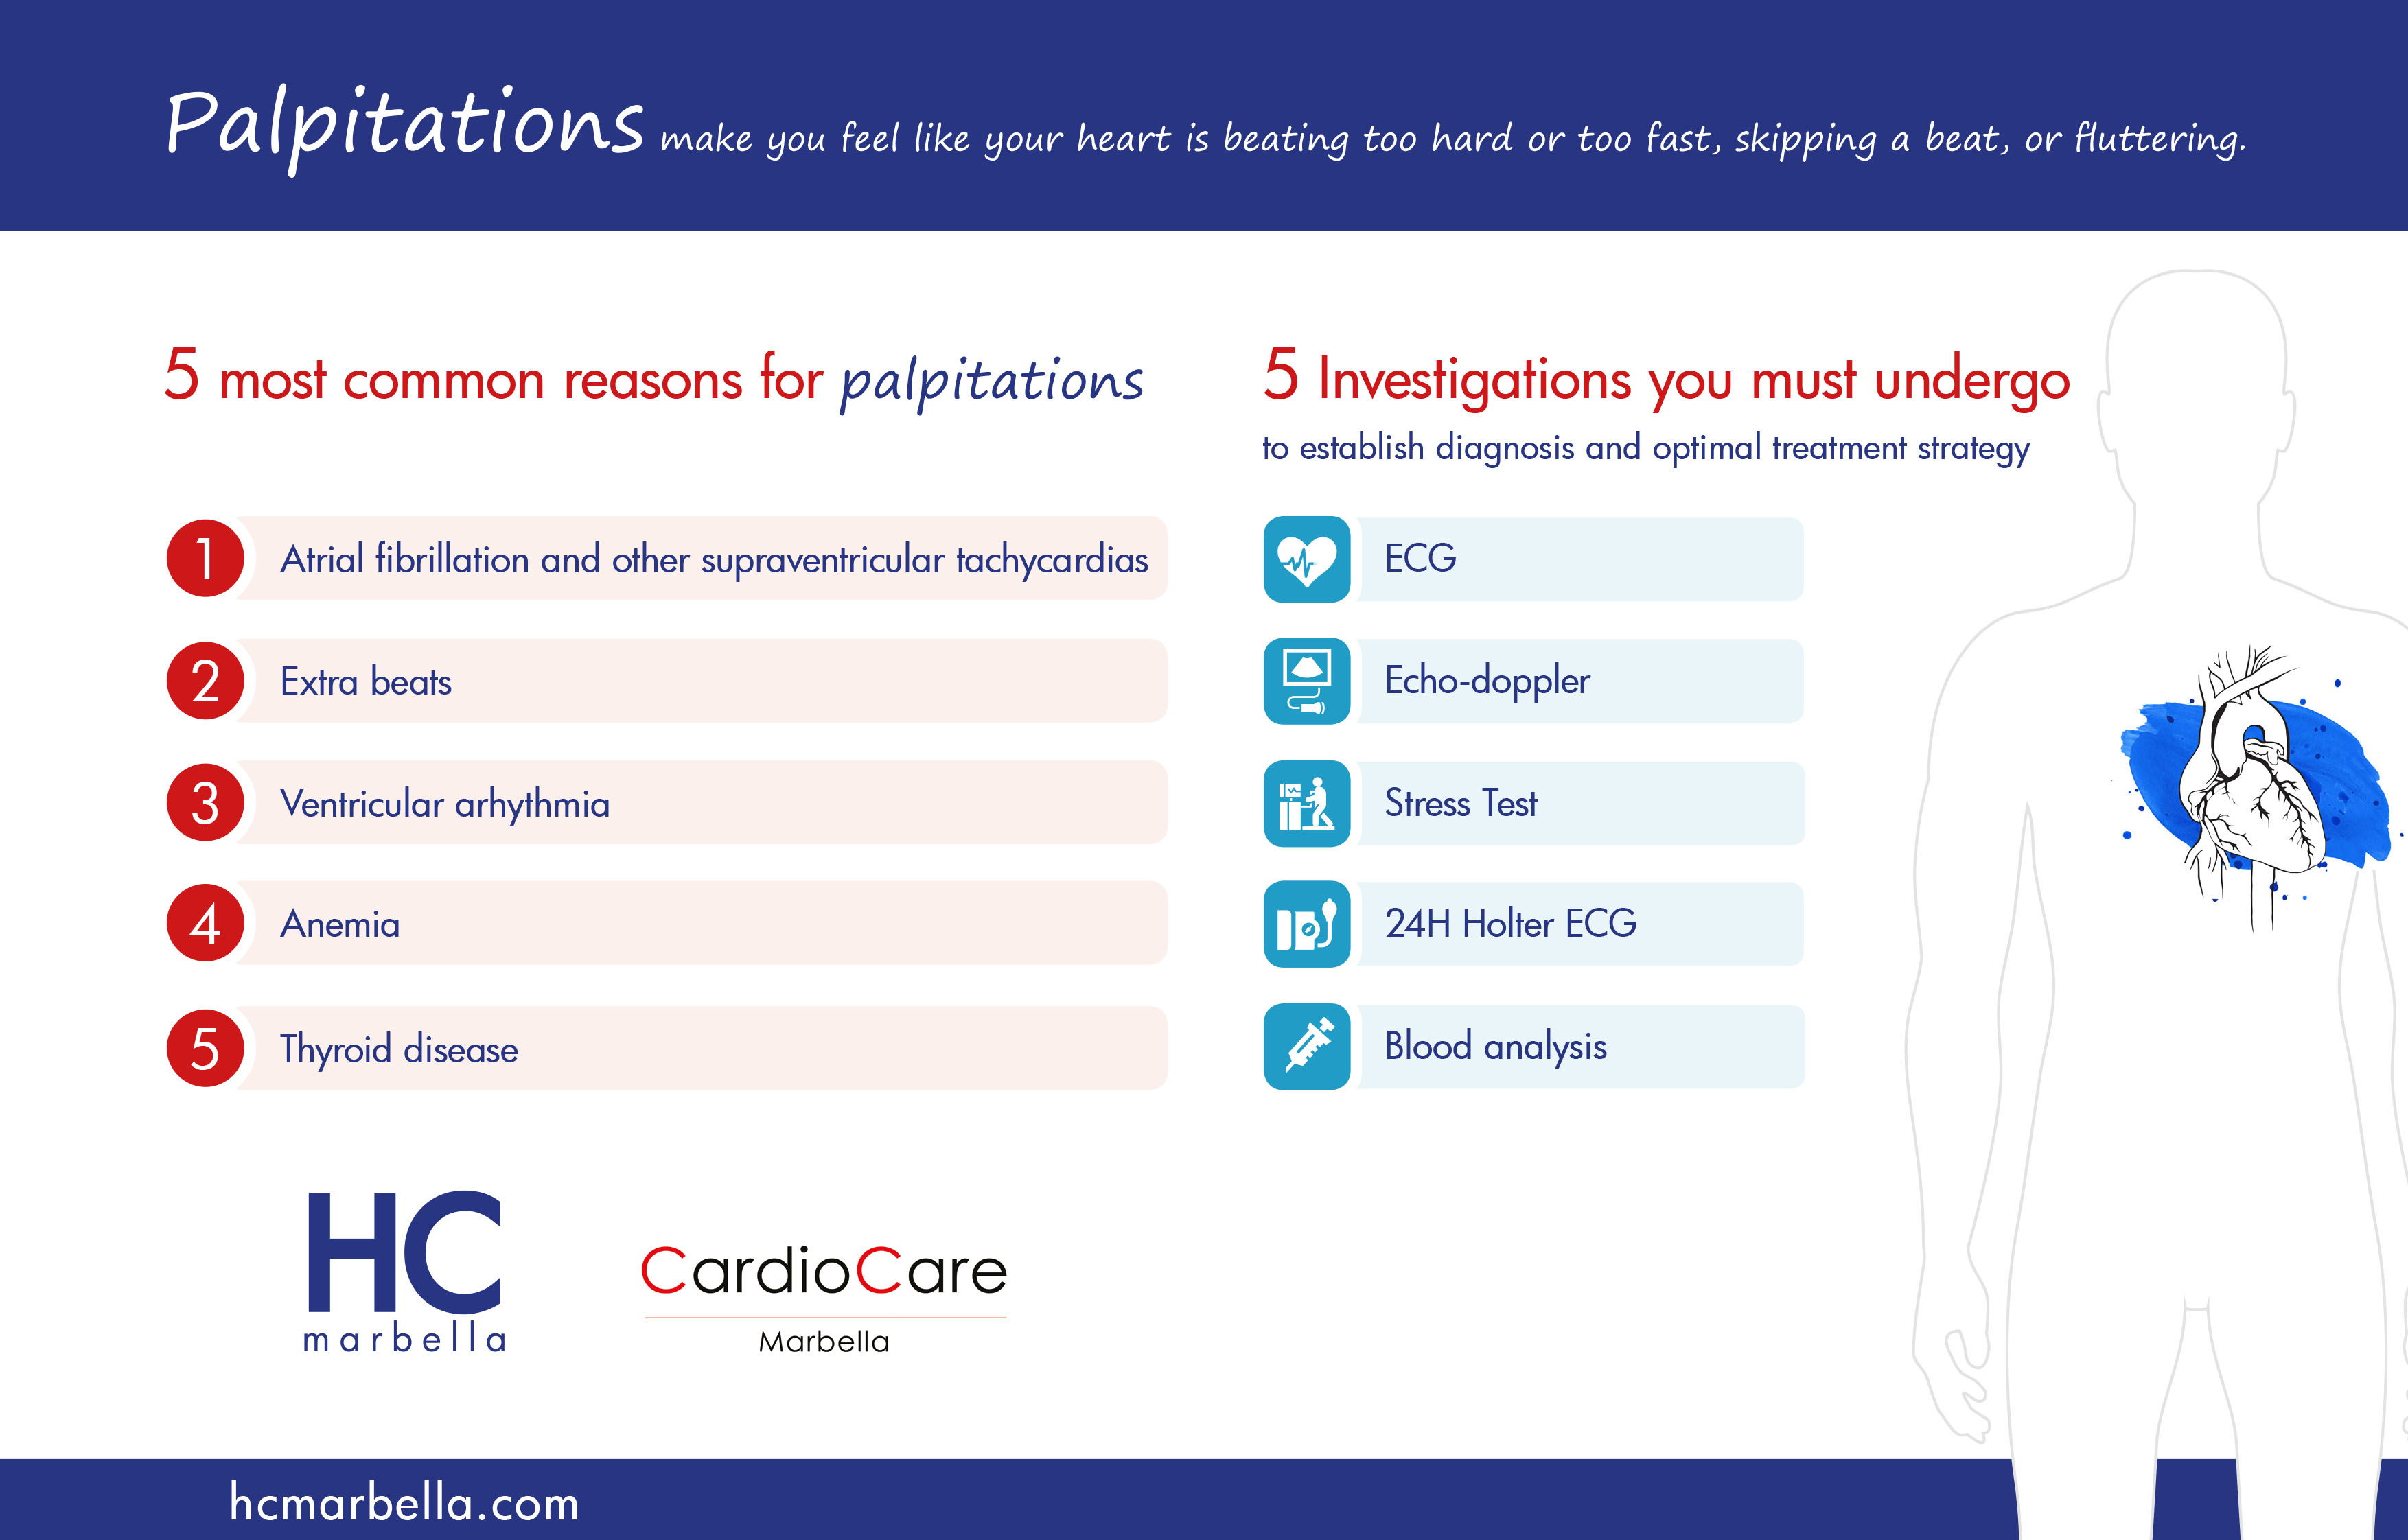 Common reasons for palpitations